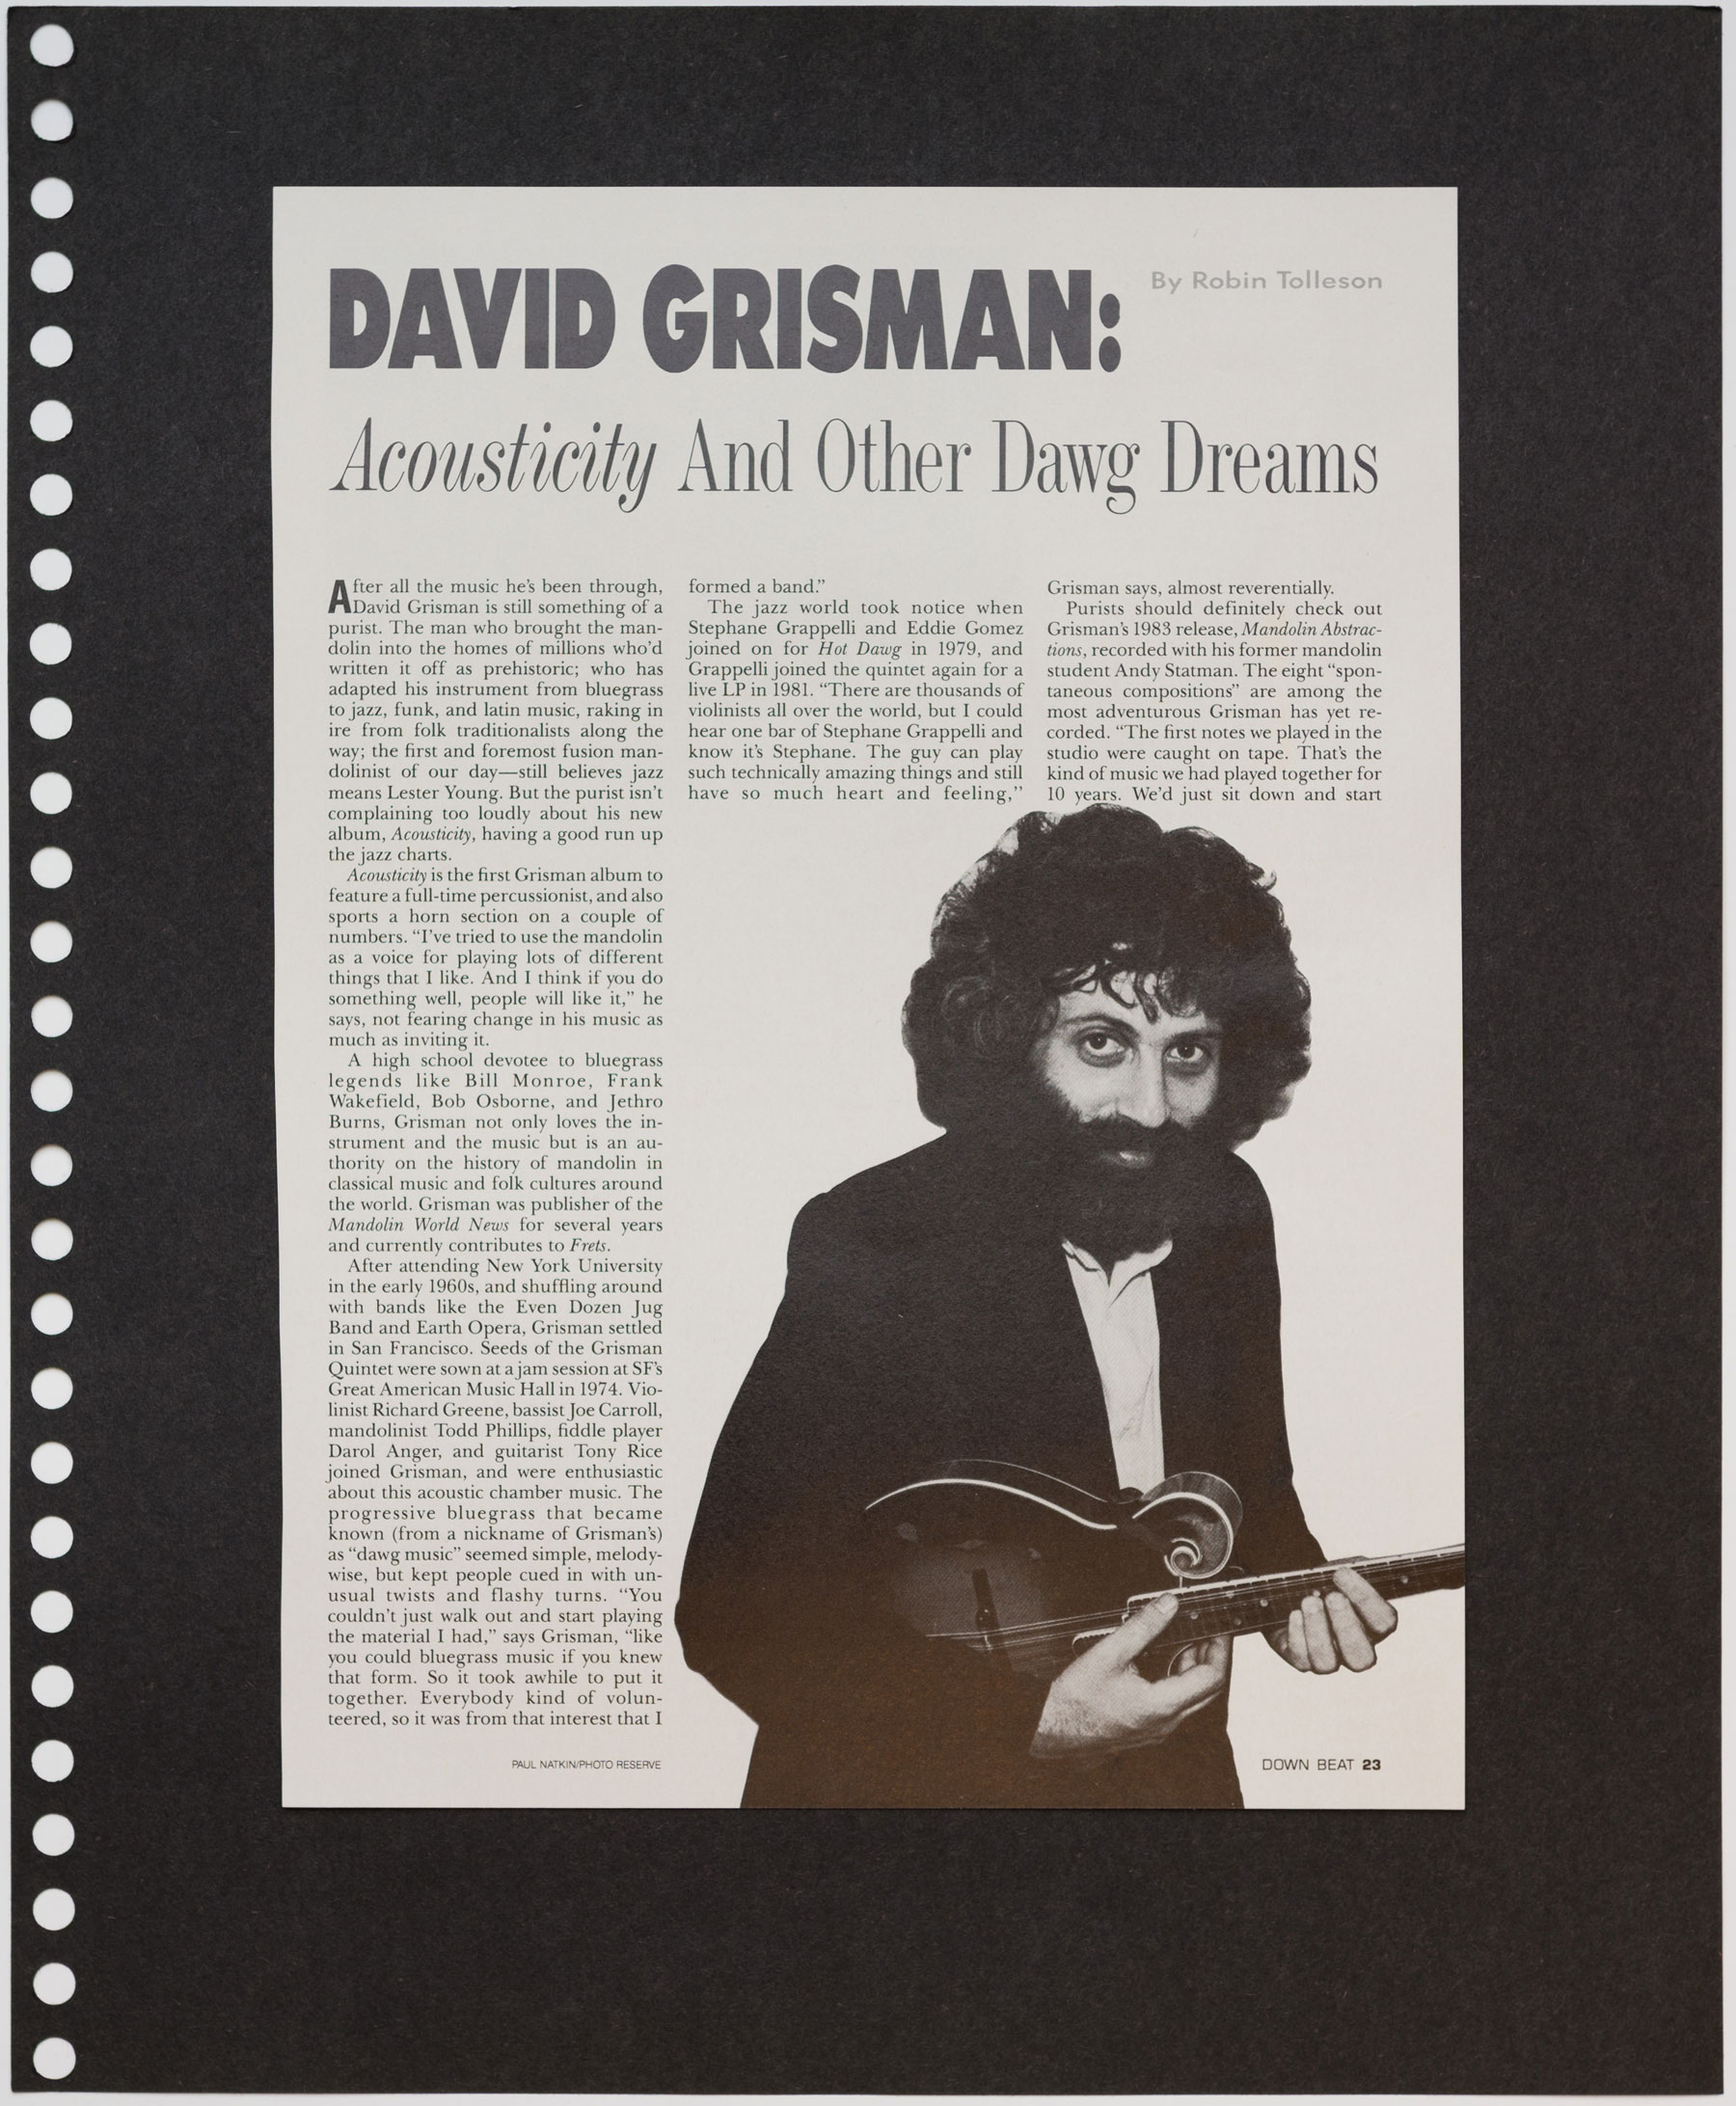 David Grisman Acousticity And Other Dawg Dreams Spinterview